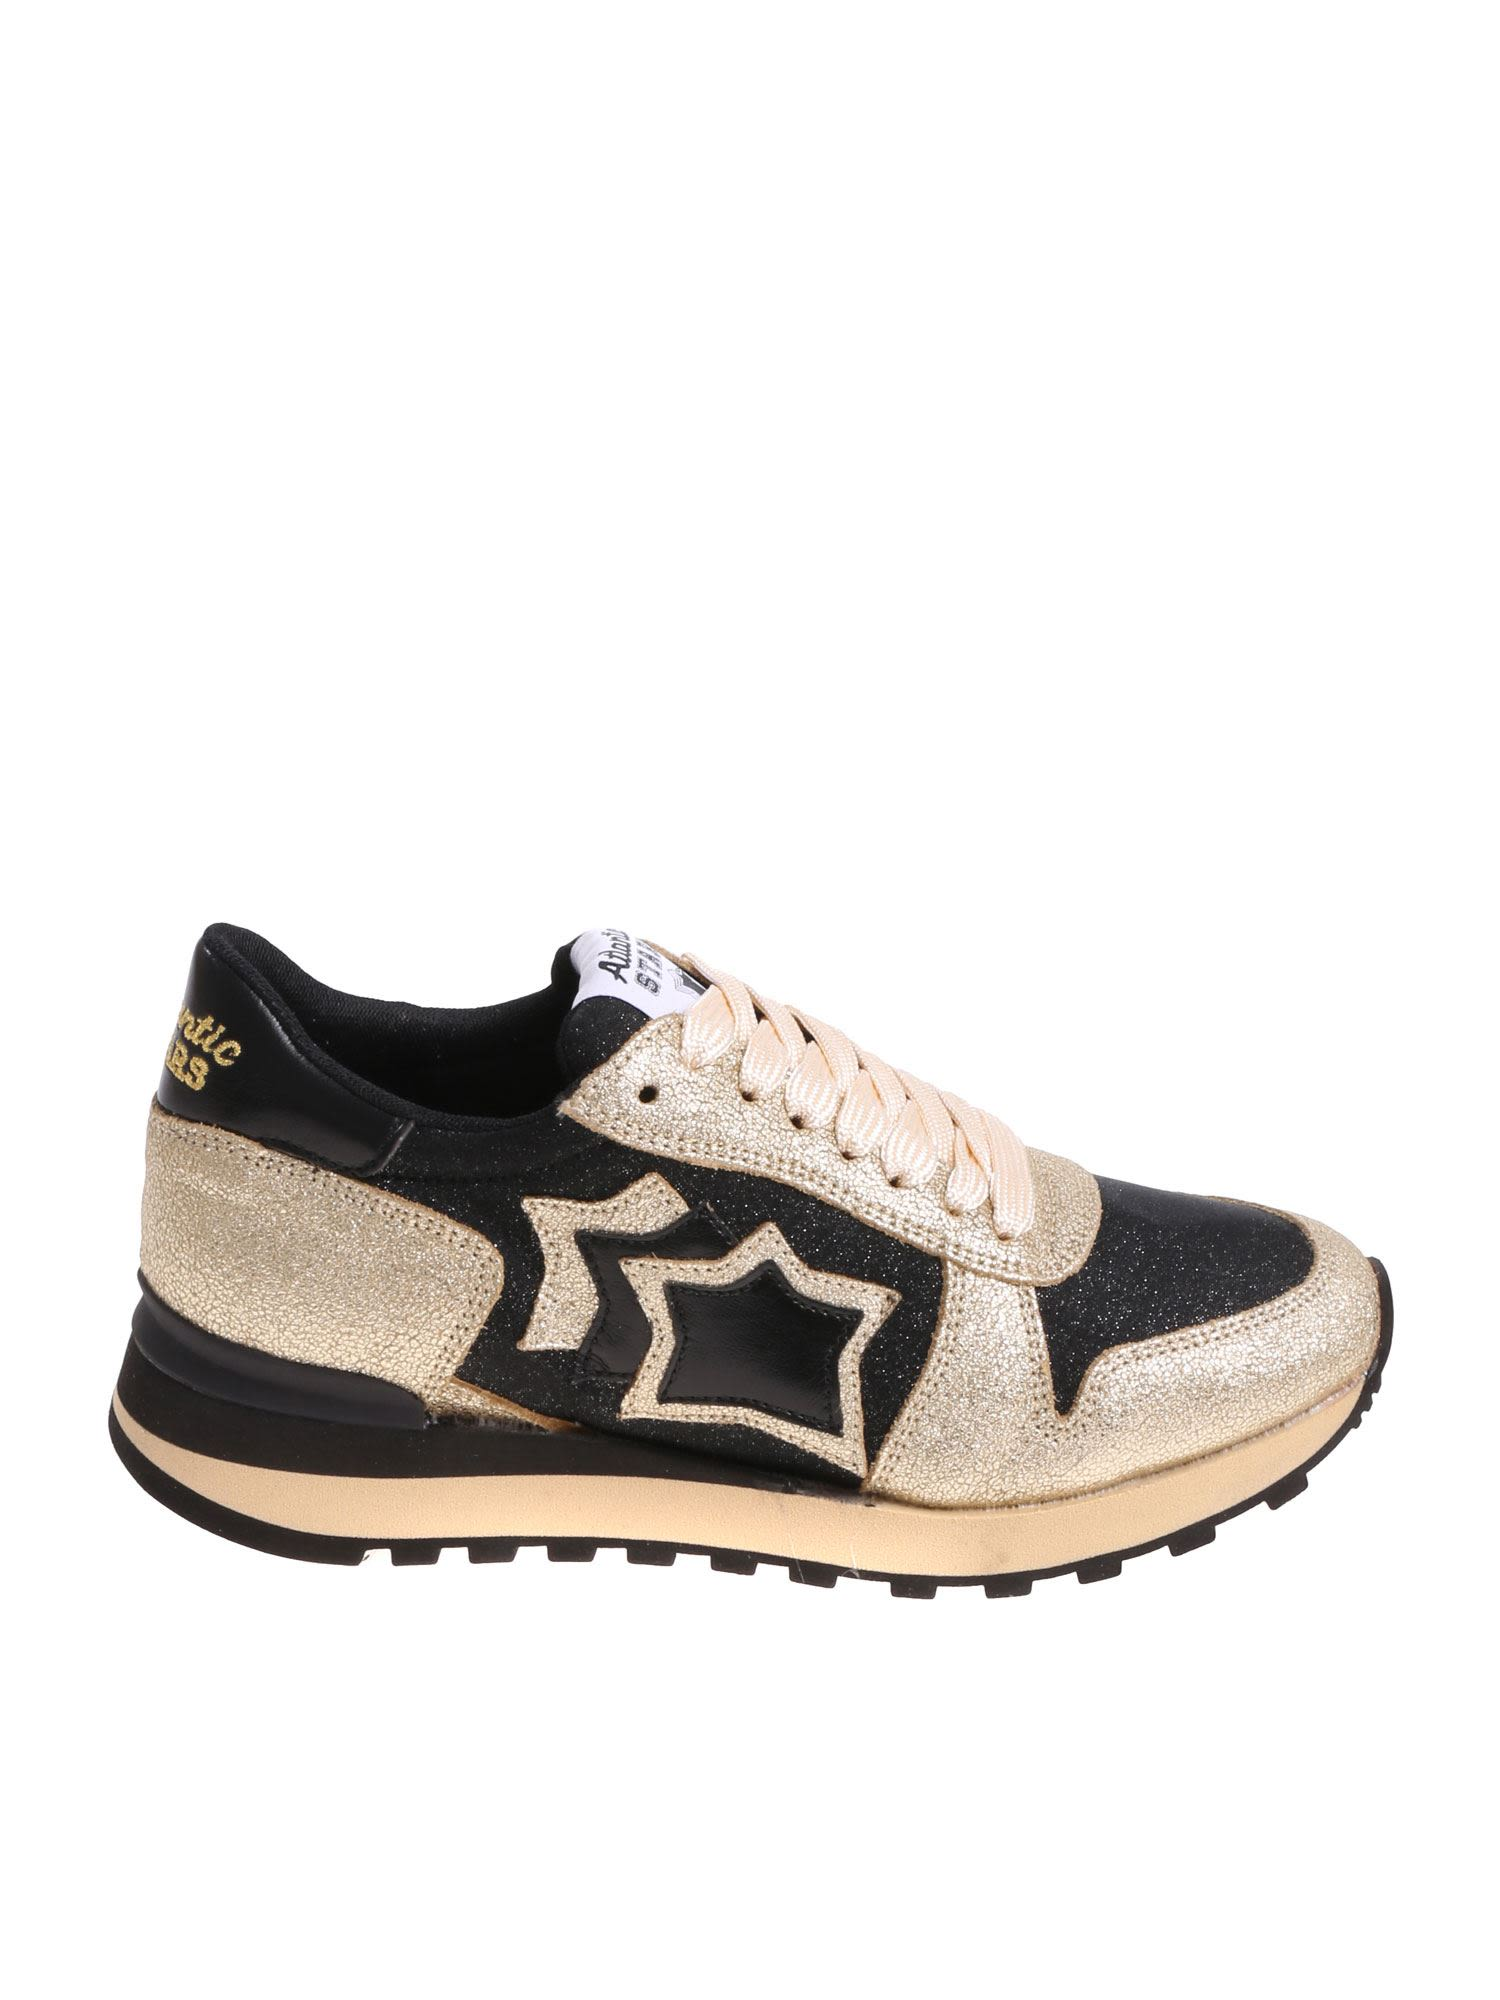 cd4355f185908d Atlantic Stars Atlantic Stars Alhena Sneakers - Black Gold ...